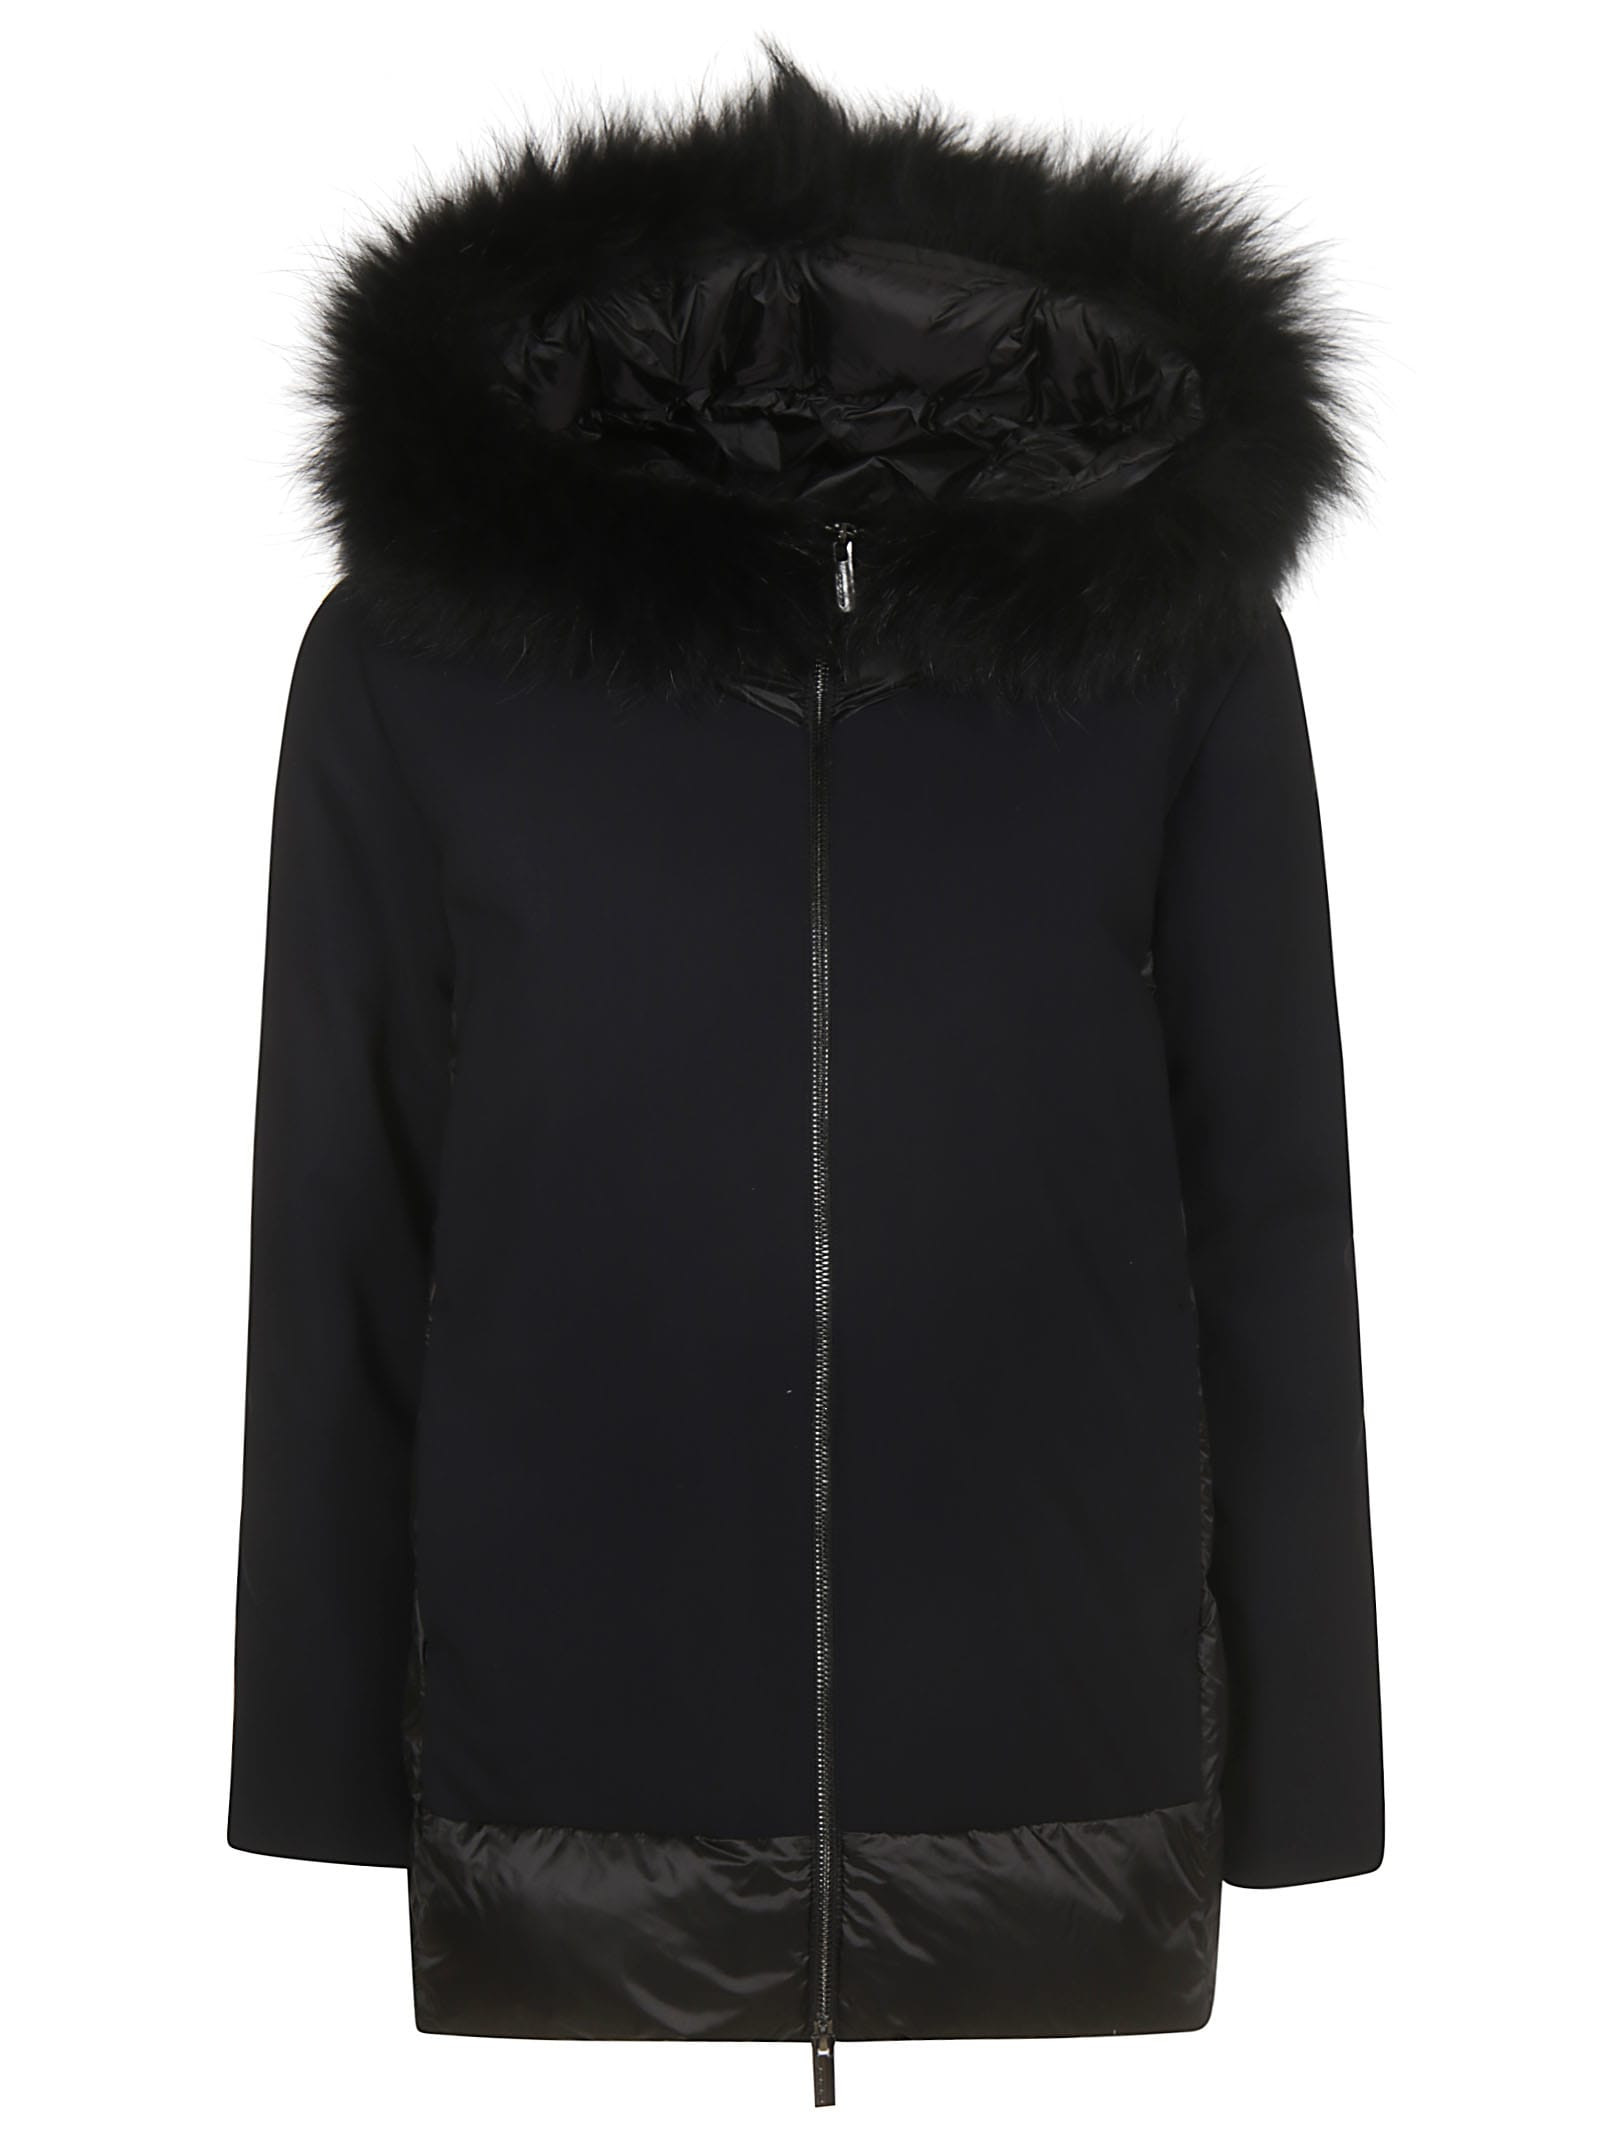 RRD – Roberto Ricci Design Winter Hybrid Zar Lady Fur Jacket